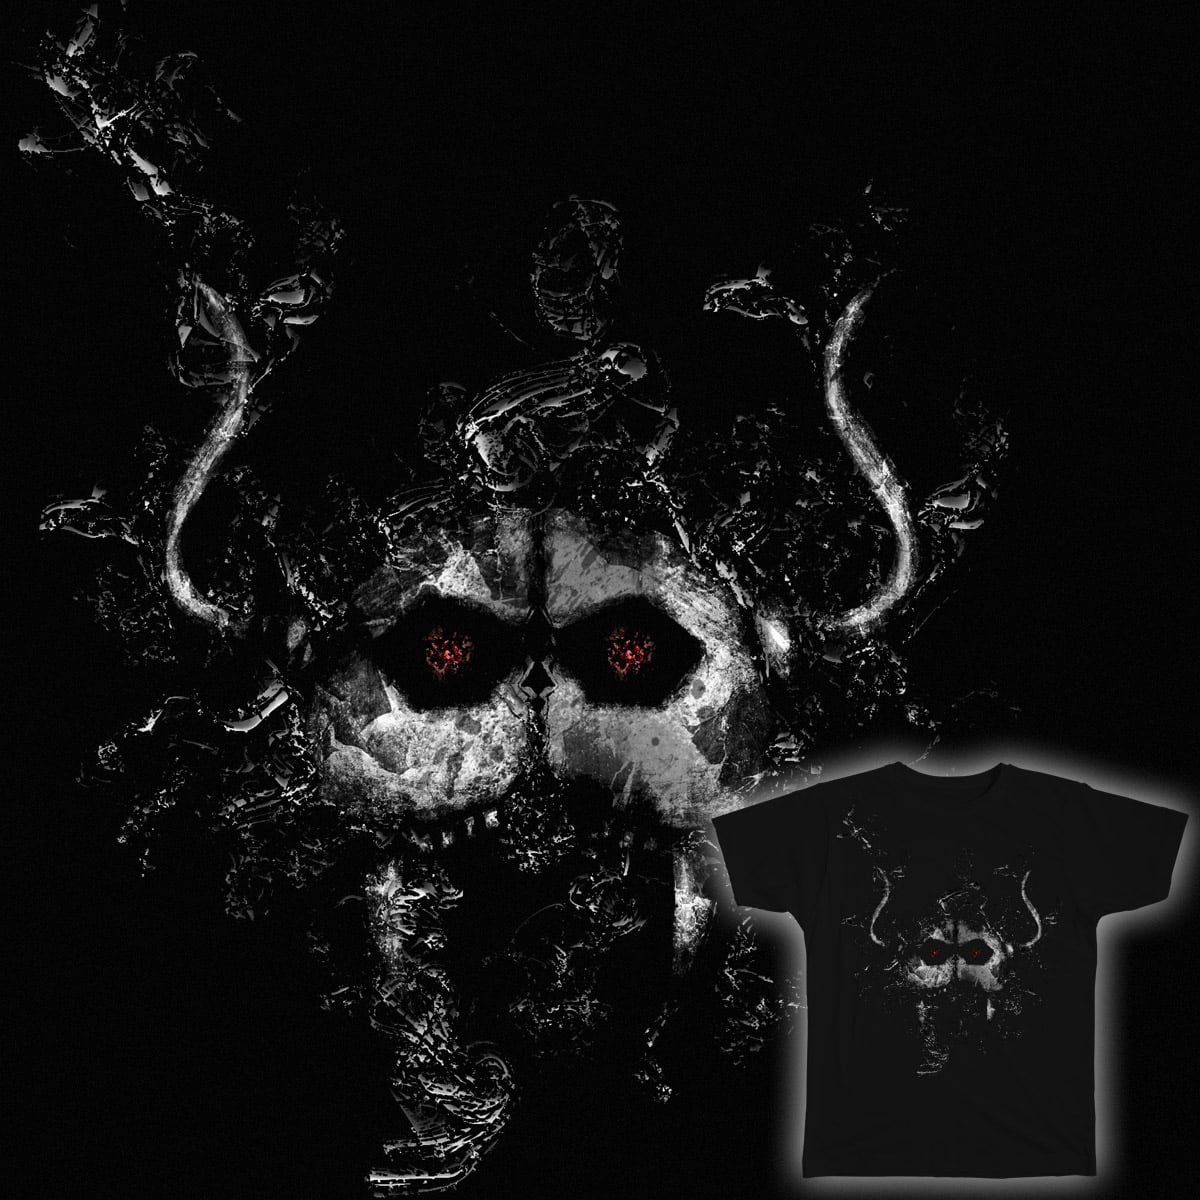 monster grunge by asifasghar1234 on Threadless